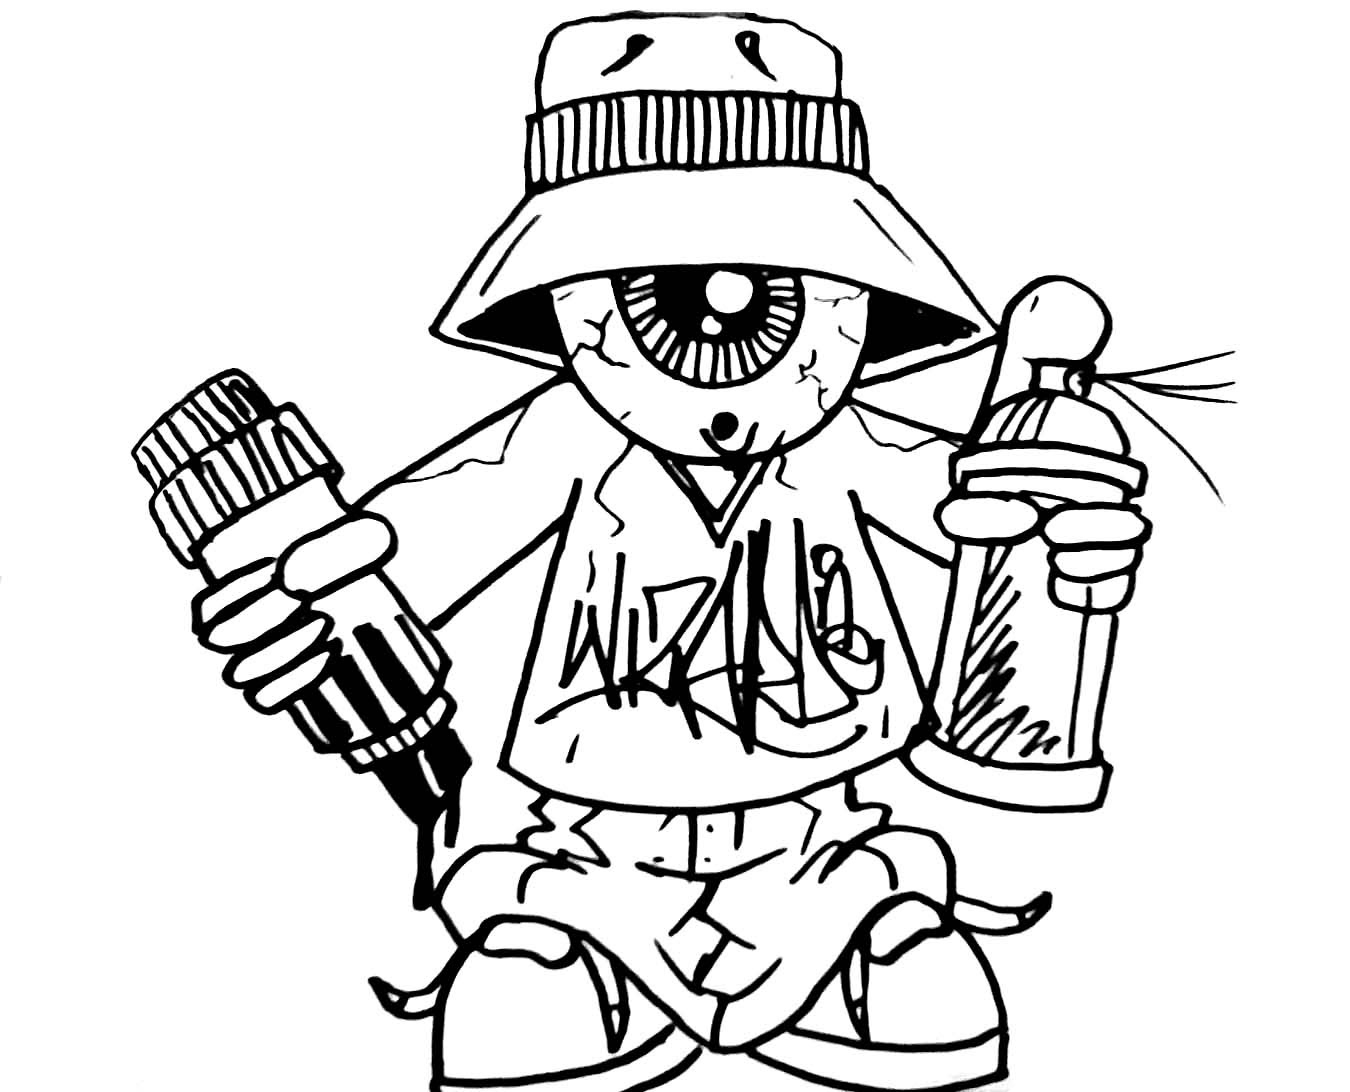 cool coloring sheets for teenagers graffiti coloring pages for teens and adults best teenagers cool for coloring sheets